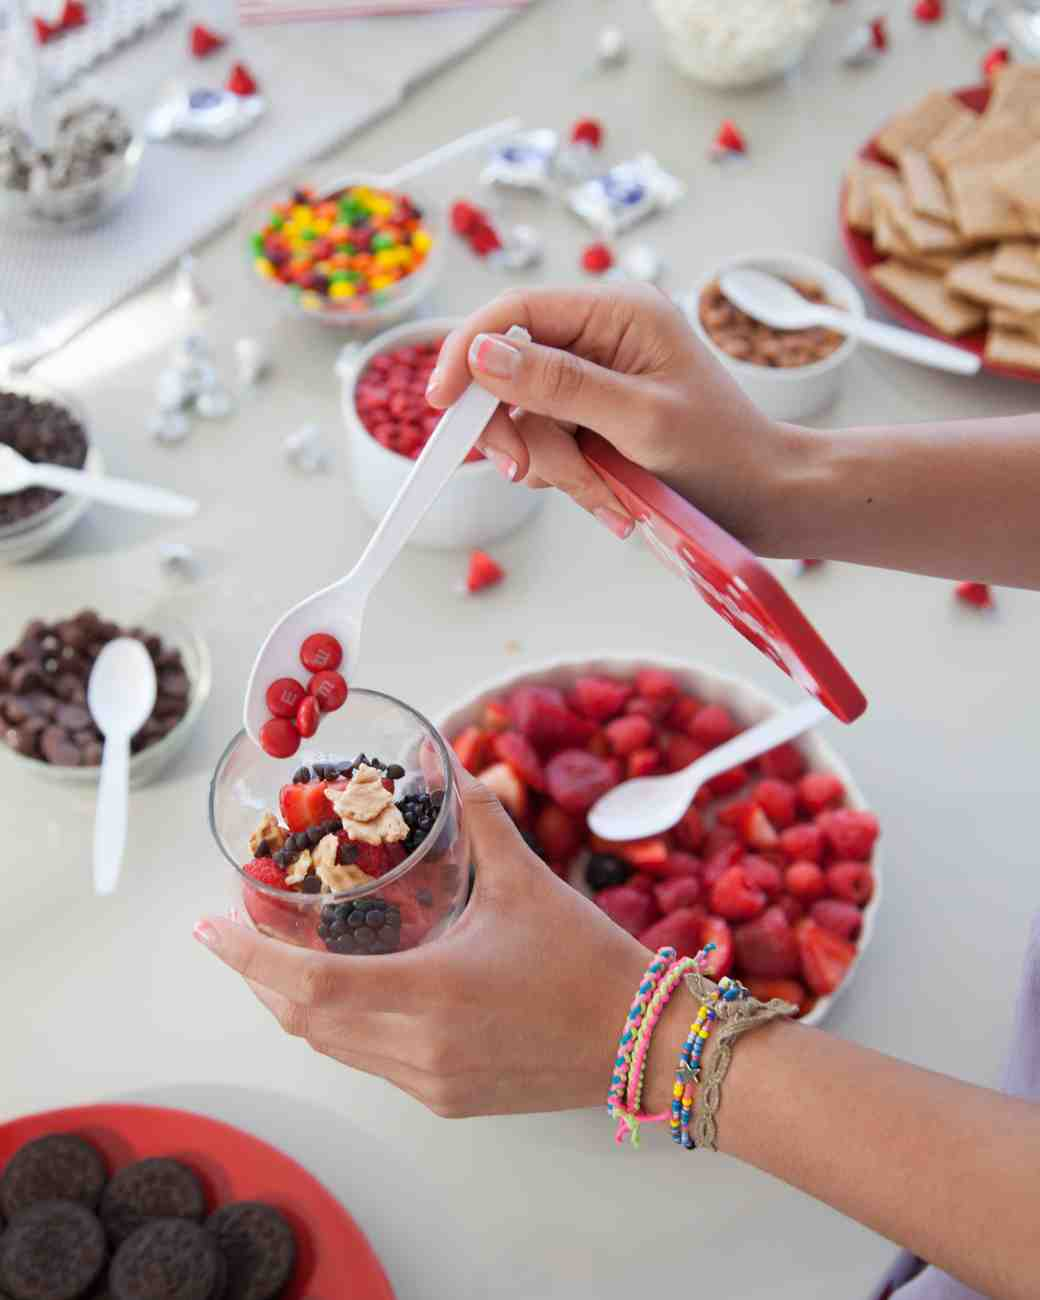 retro-ice-cream-parlor-bridal-shower-guest-adding-toppings-0815_vert